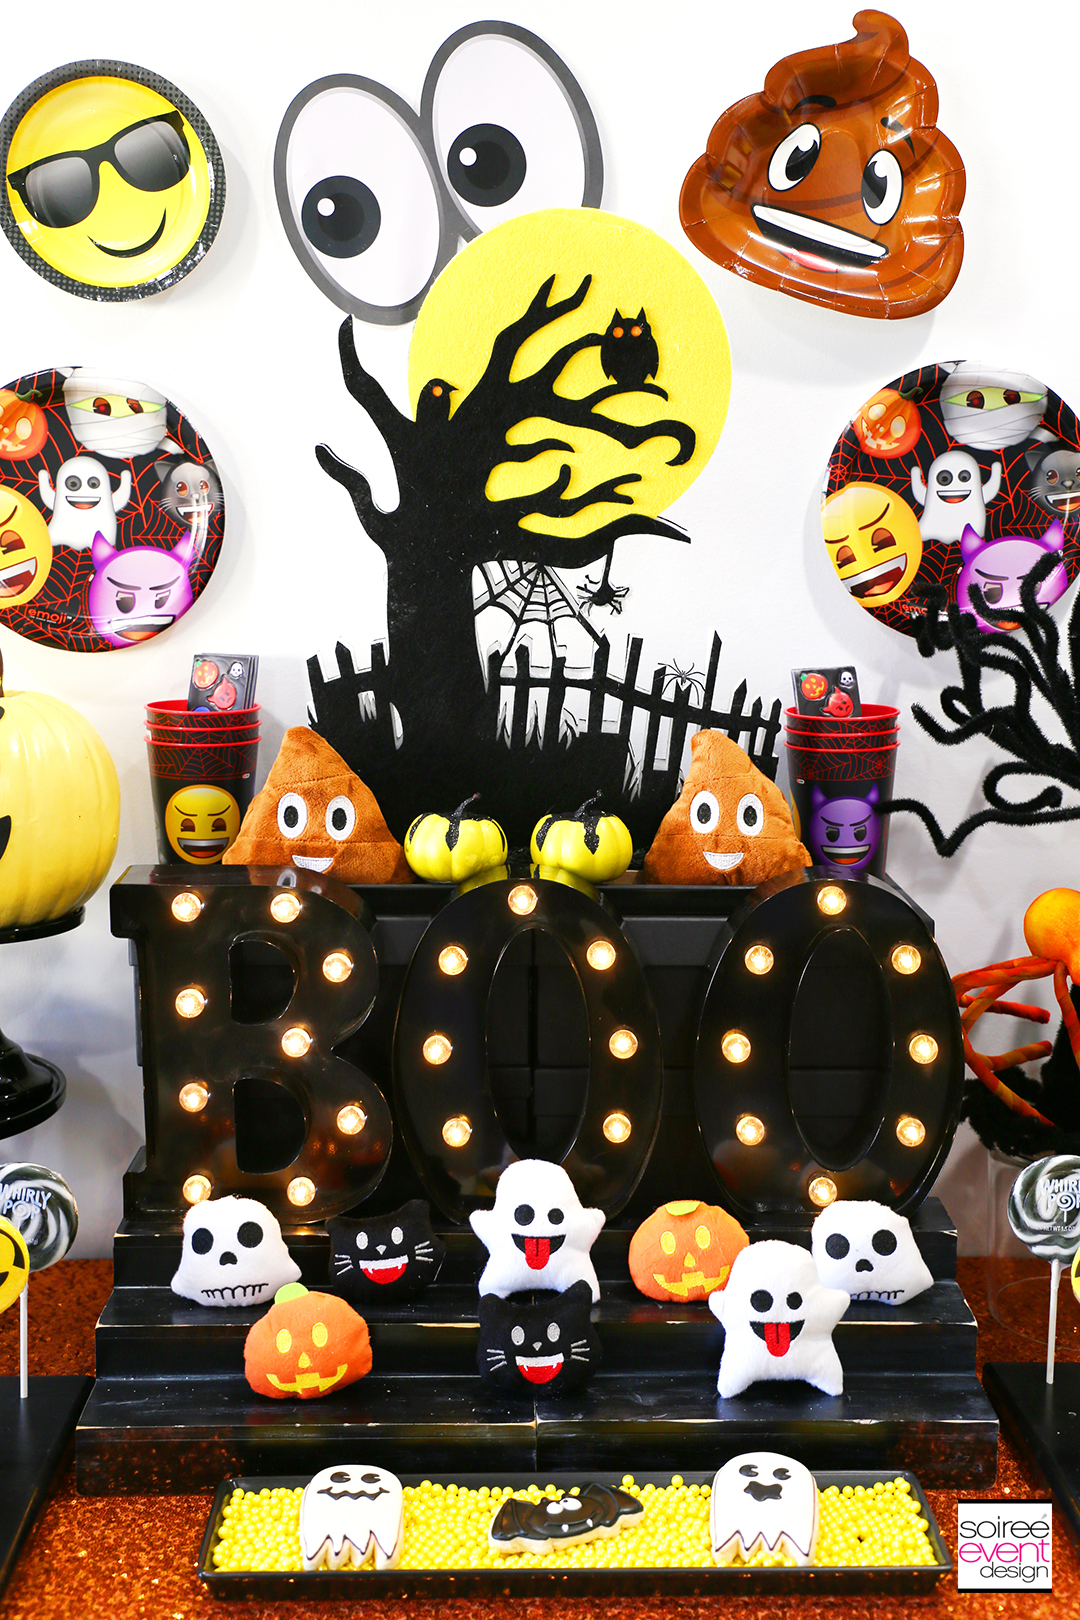 Emoji Halloween Party Ideas - Emoji Party Decorations